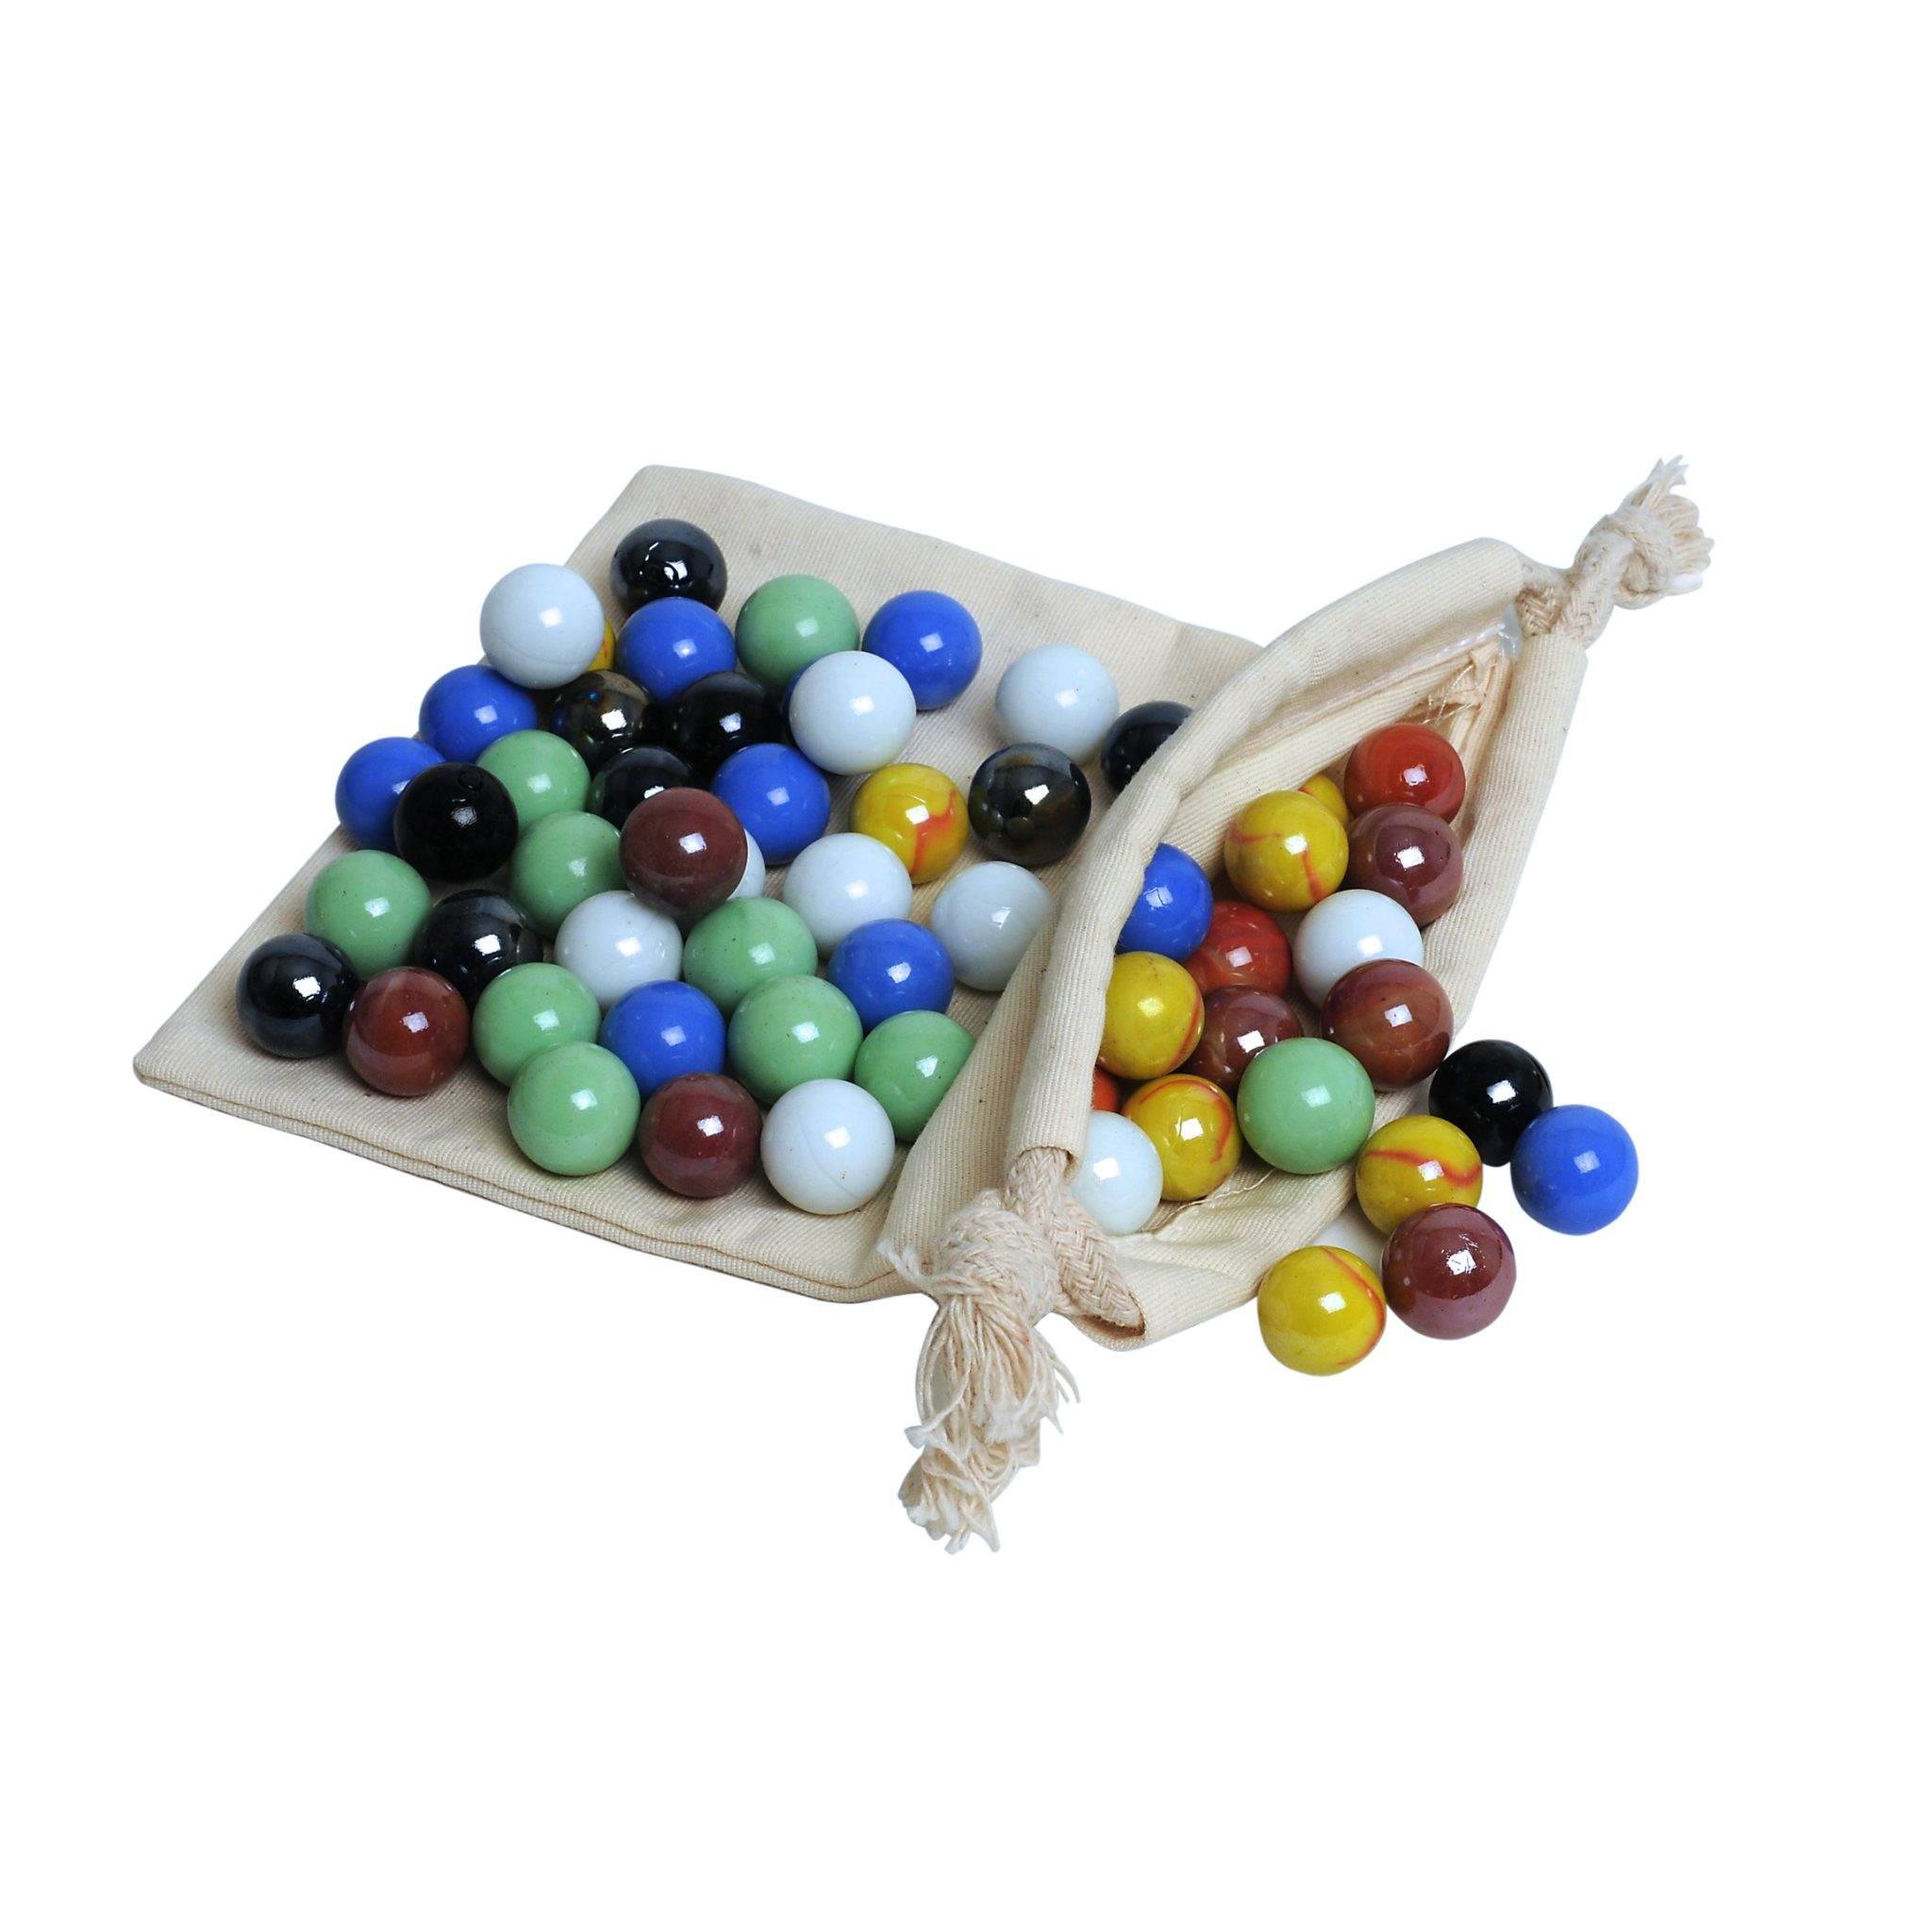 Popular Round Flat Glass Marbles - Buy Flat Bottom Glass ... |Most Desirable Marbles Glass